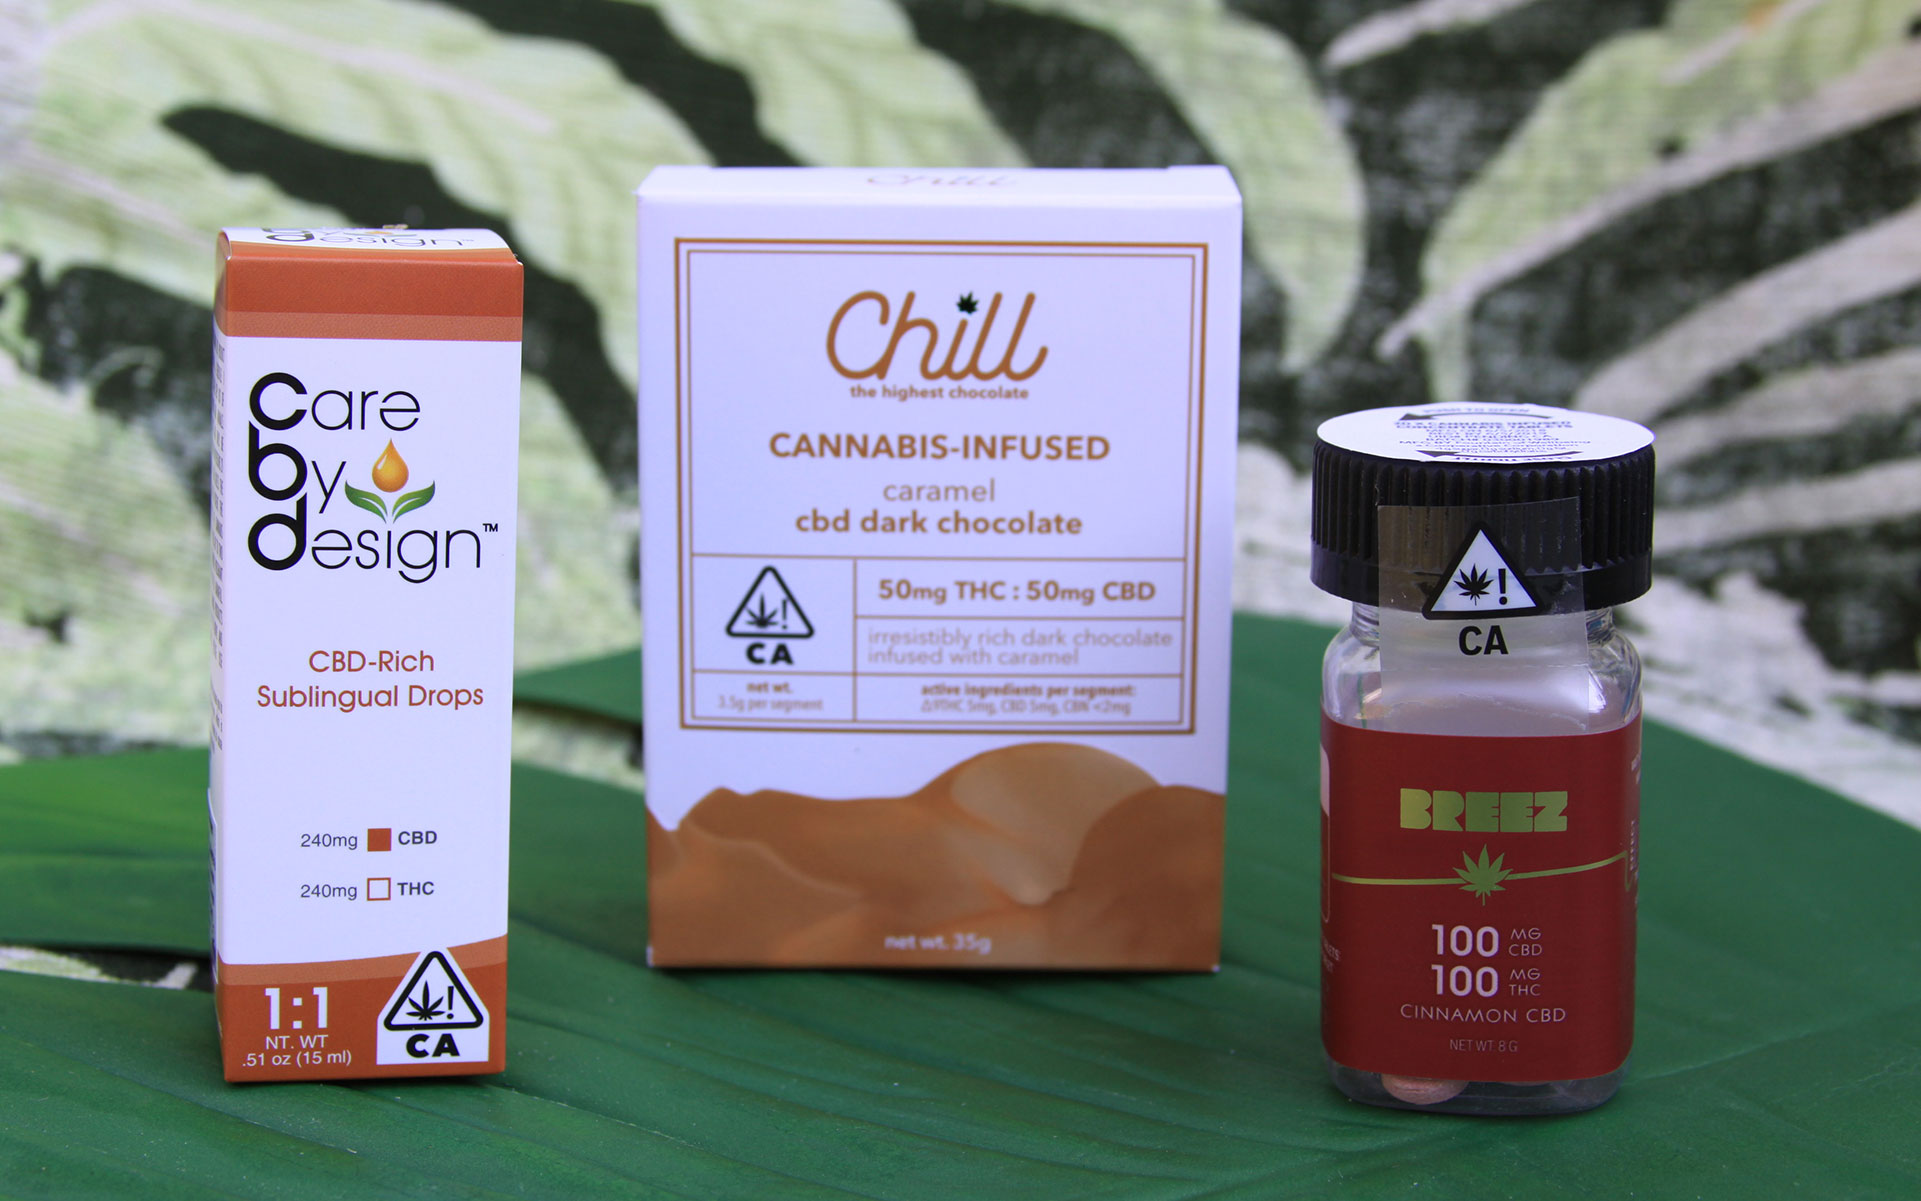 Balance Your High With These California 1:1 CBD & THC